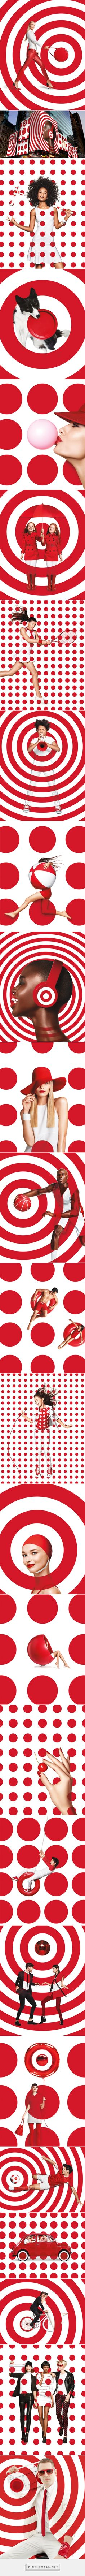 Target Branding 2015 - Allan Peters - created via http://pinthemall.net